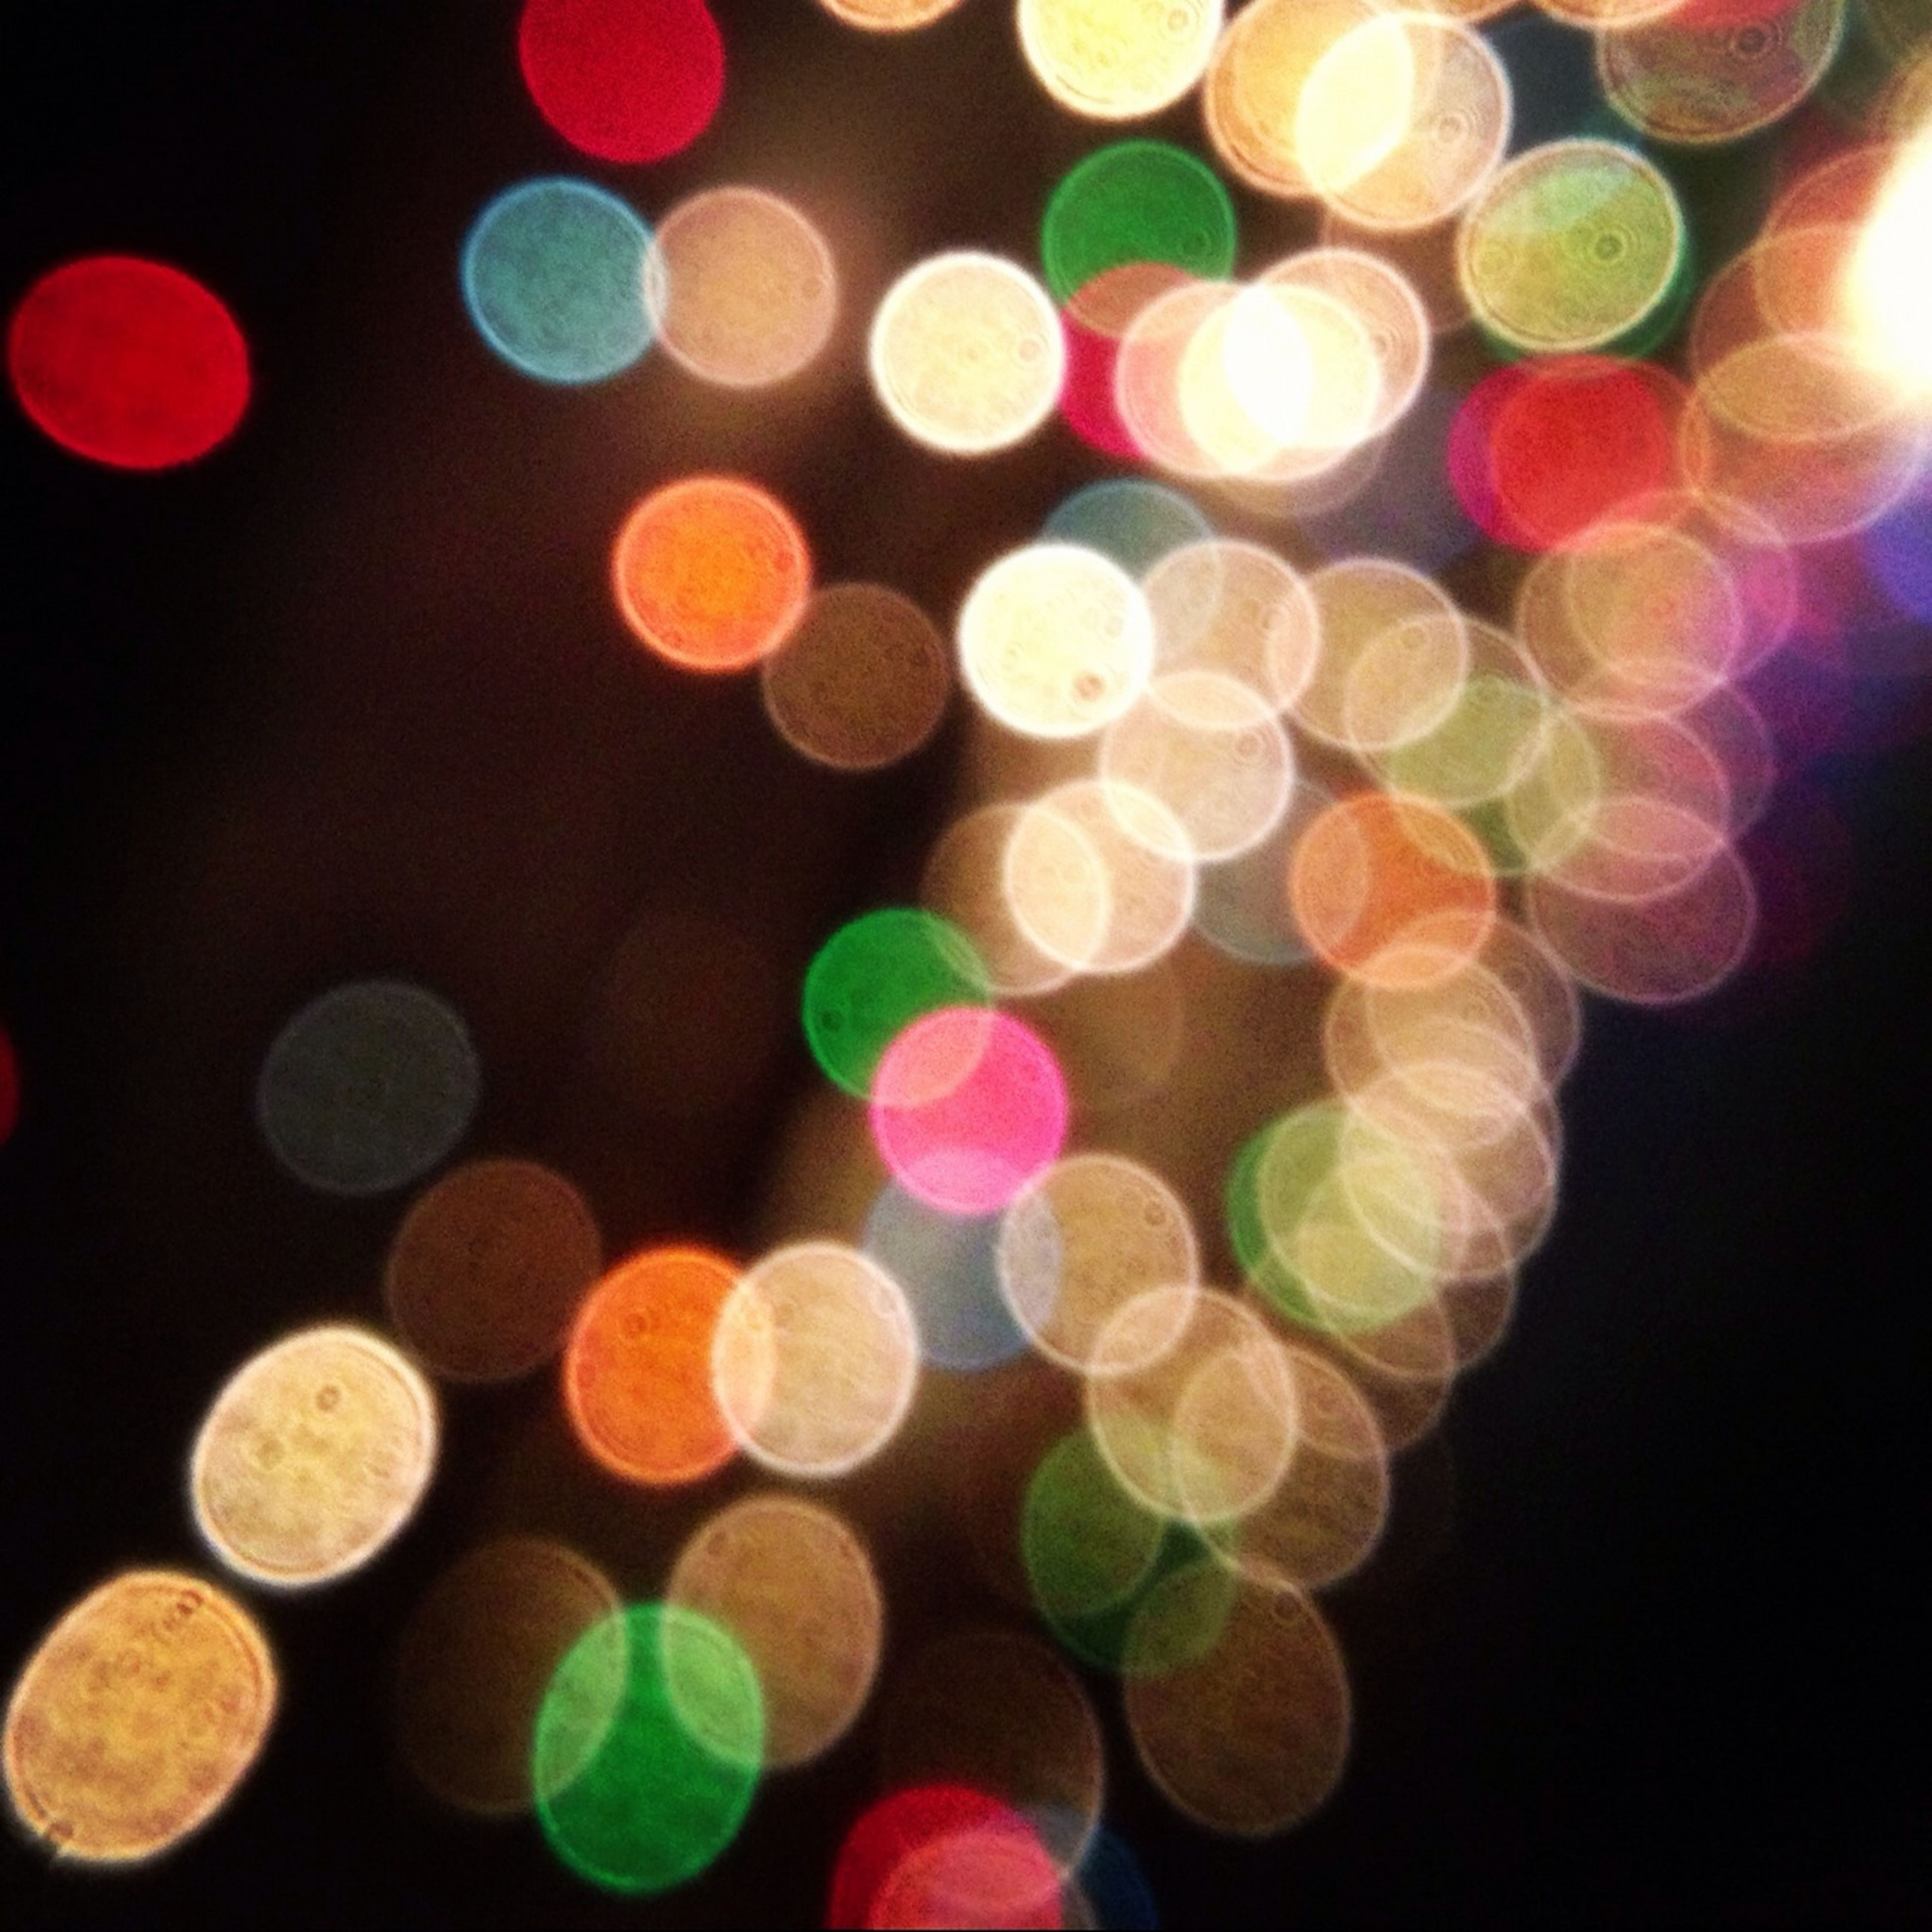 multi colored, illuminated, colorful, lighting equipment, night, decoration, indoors, circle, glowing, light - natural phenomenon, pink color, celebration, variation, abundance, close-up, large group of objects, no people, pattern, light, abstract